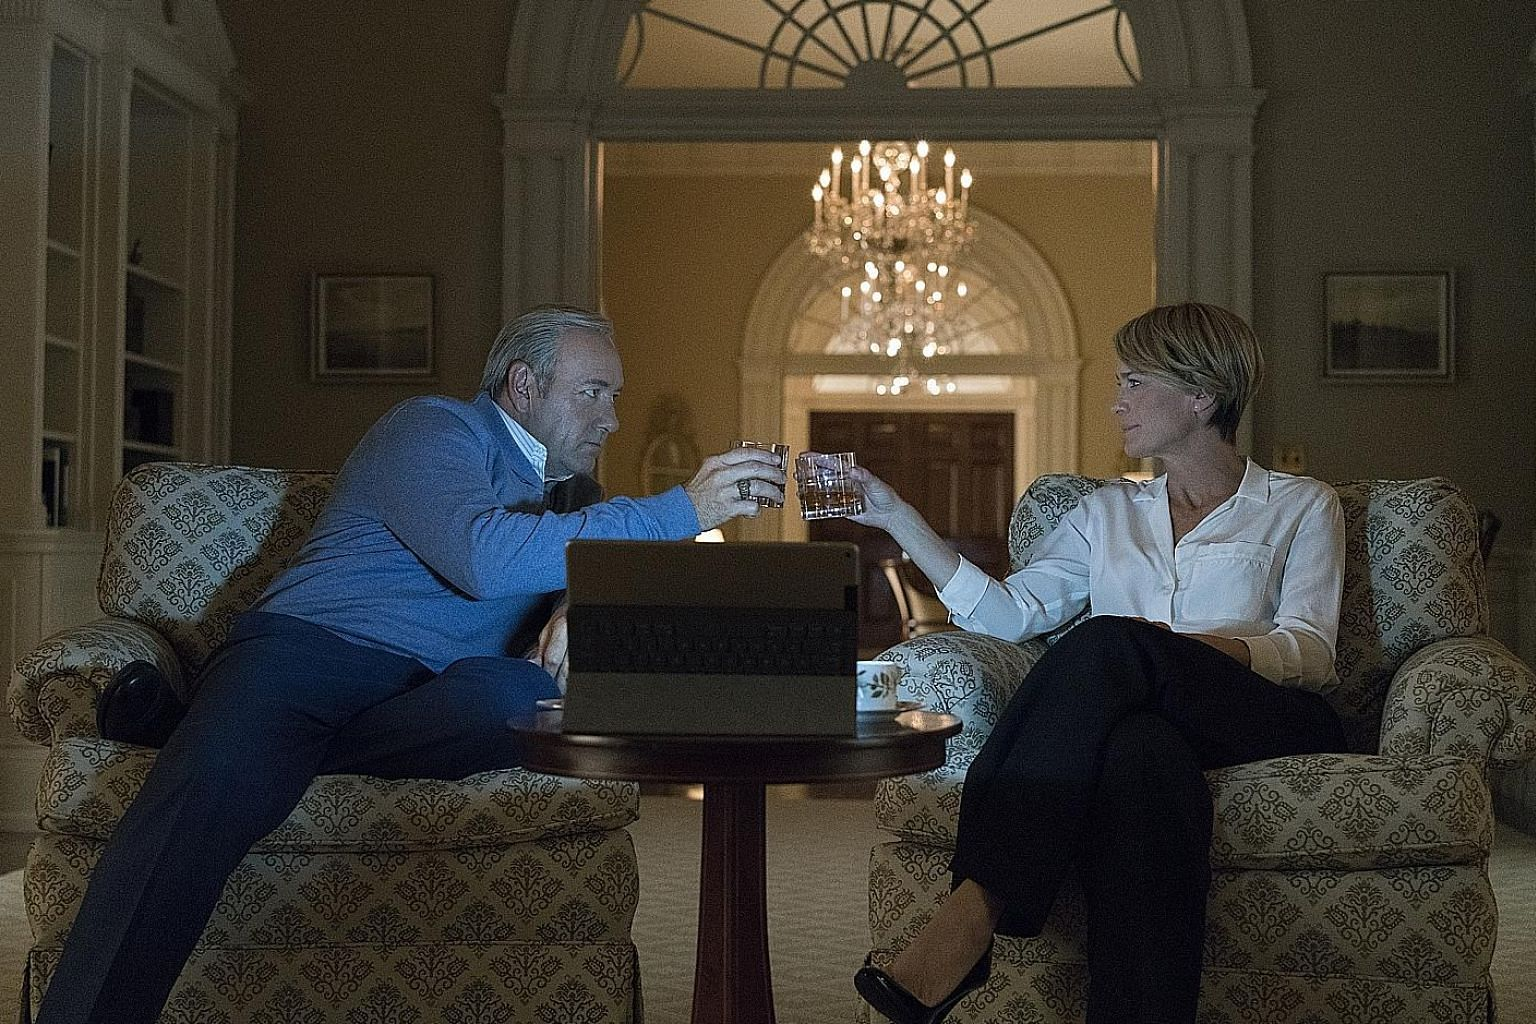 Kevin Spacey and Robin Wright play power-hungry couple Frank and Claire Underwood in House Of Cards.